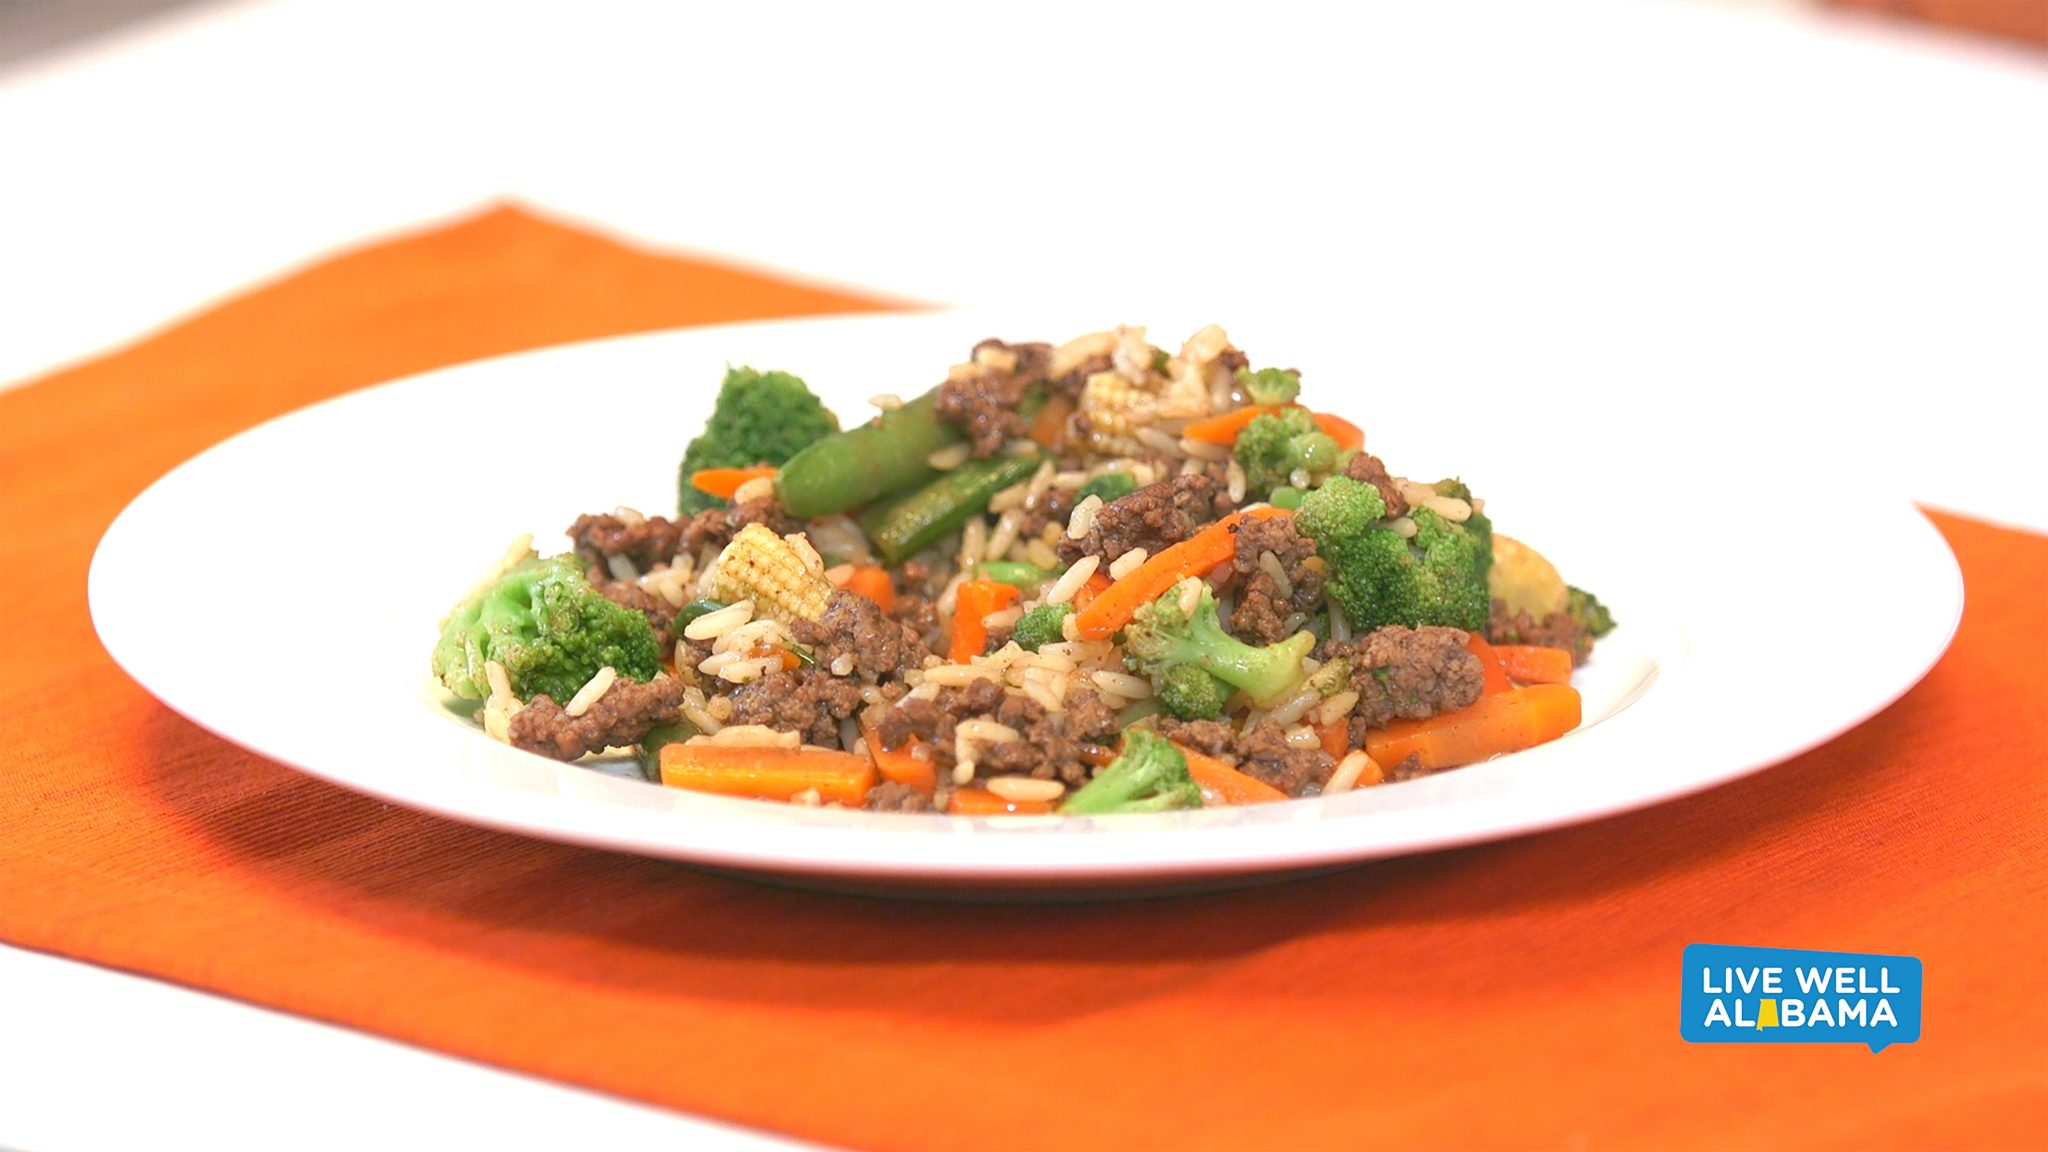 Live Well Alabama recipe, Quick Stir Fry. Includes broccoli, carrots, and other optional veggies.